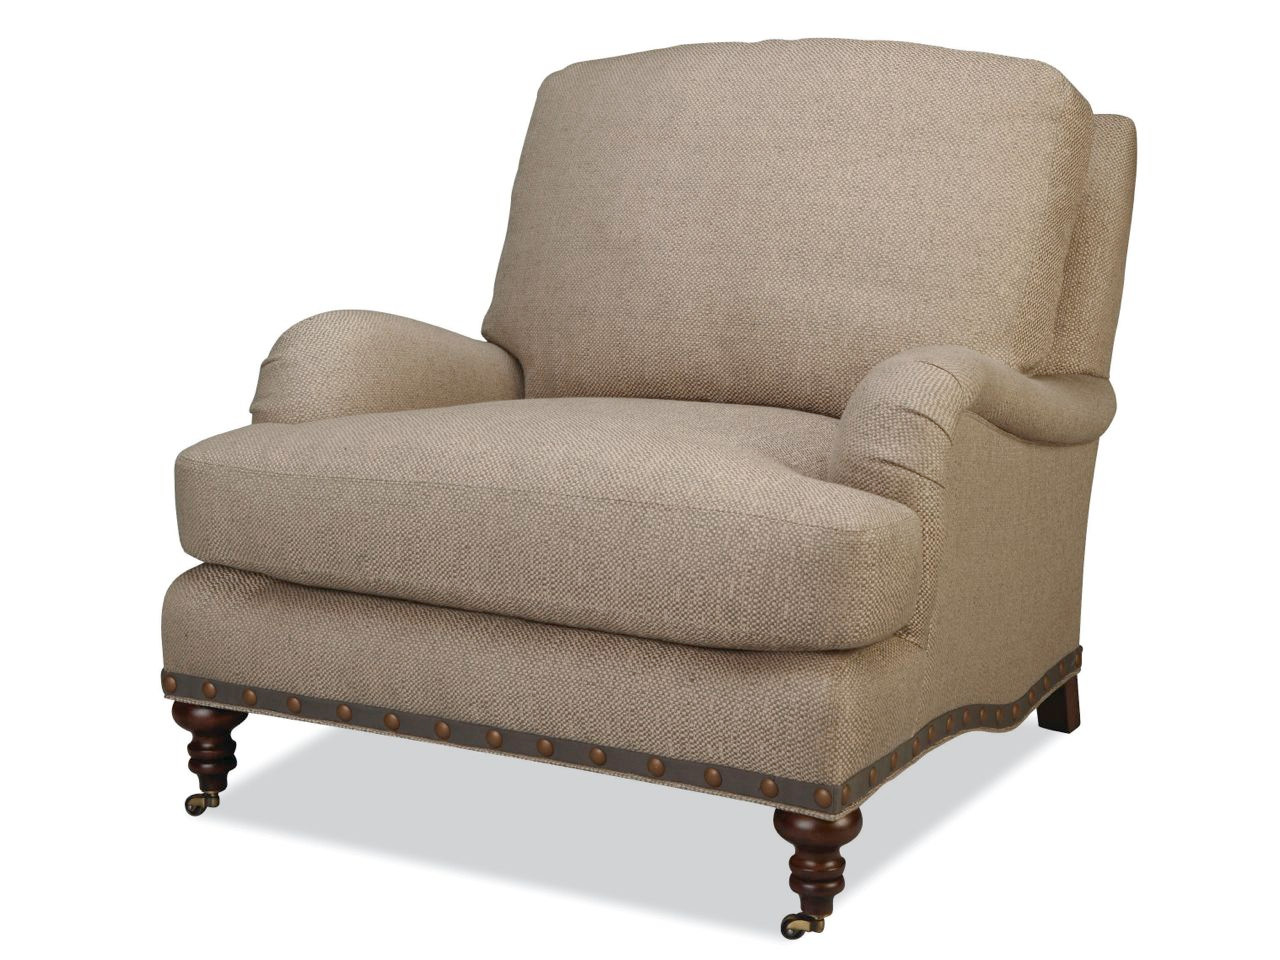 Awe Inspiring Beechwood Chair Armchairs Living Room Chairs Accent Alphanode Cool Chair Designs And Ideas Alphanodeonline